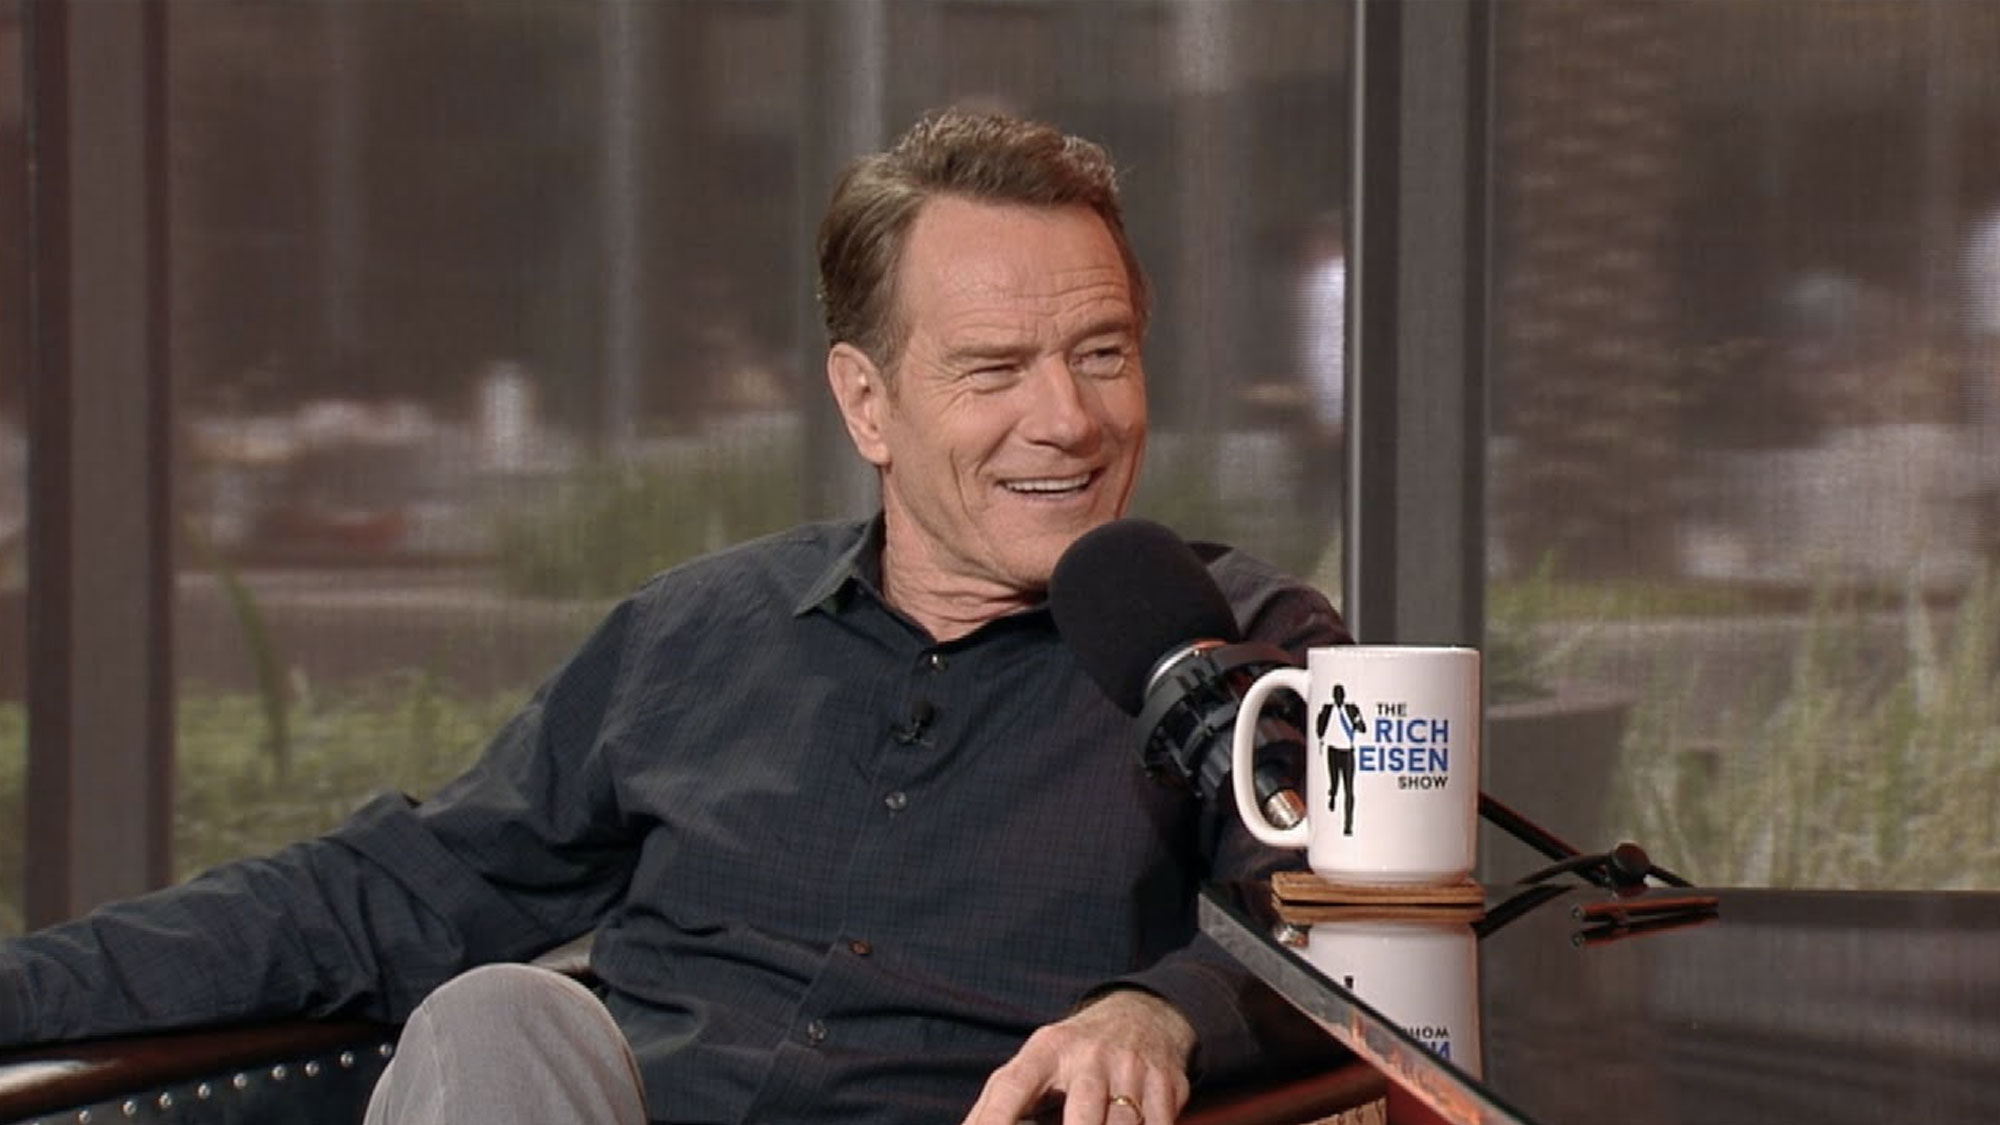 Bryan Cranston interviewé dans <em>The Rich Eisen Show</em>